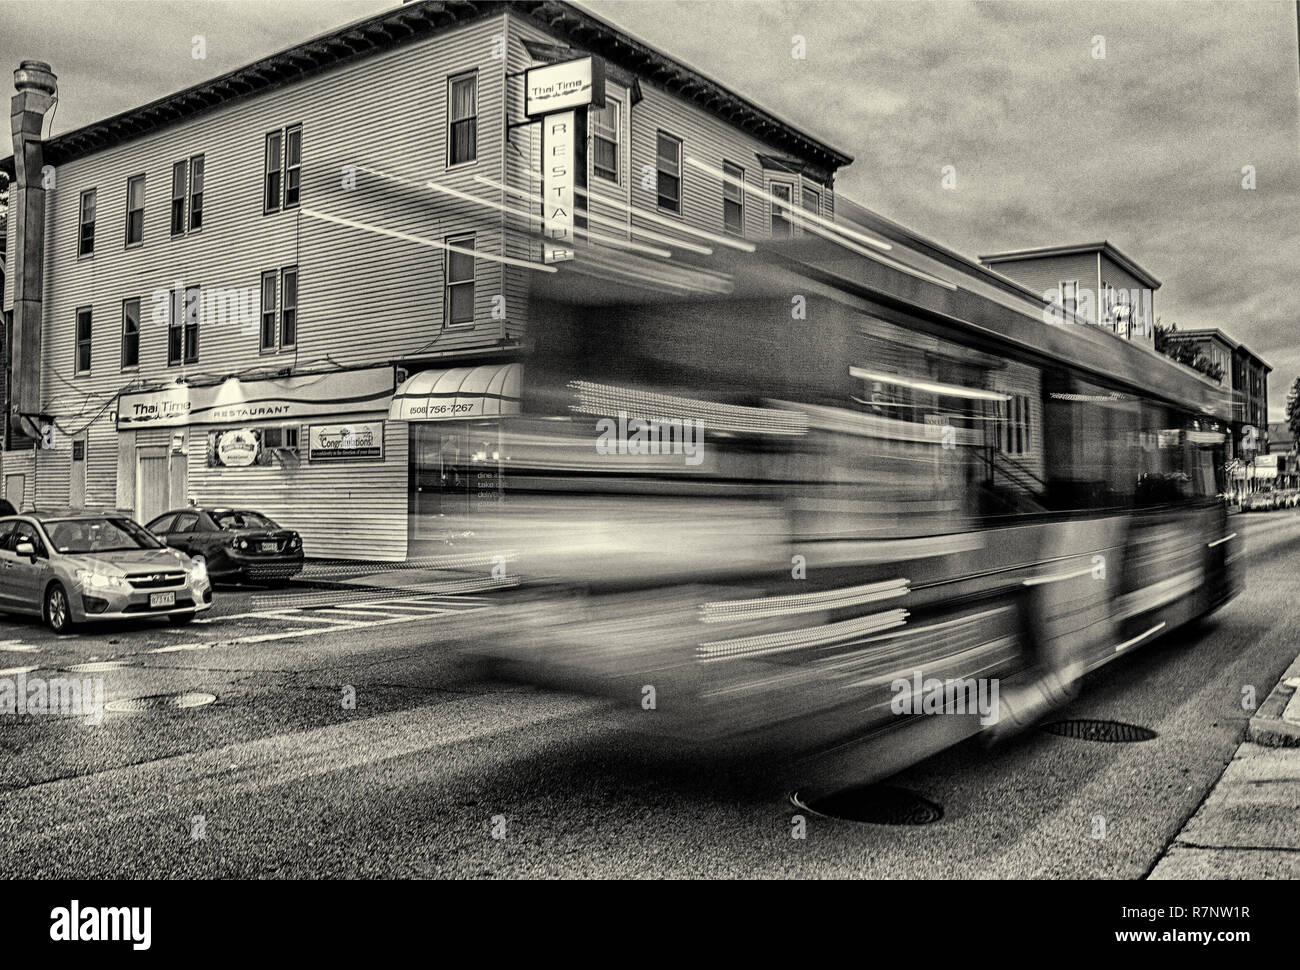 Bus on Highland Street in Worcester, MA - Stock Image